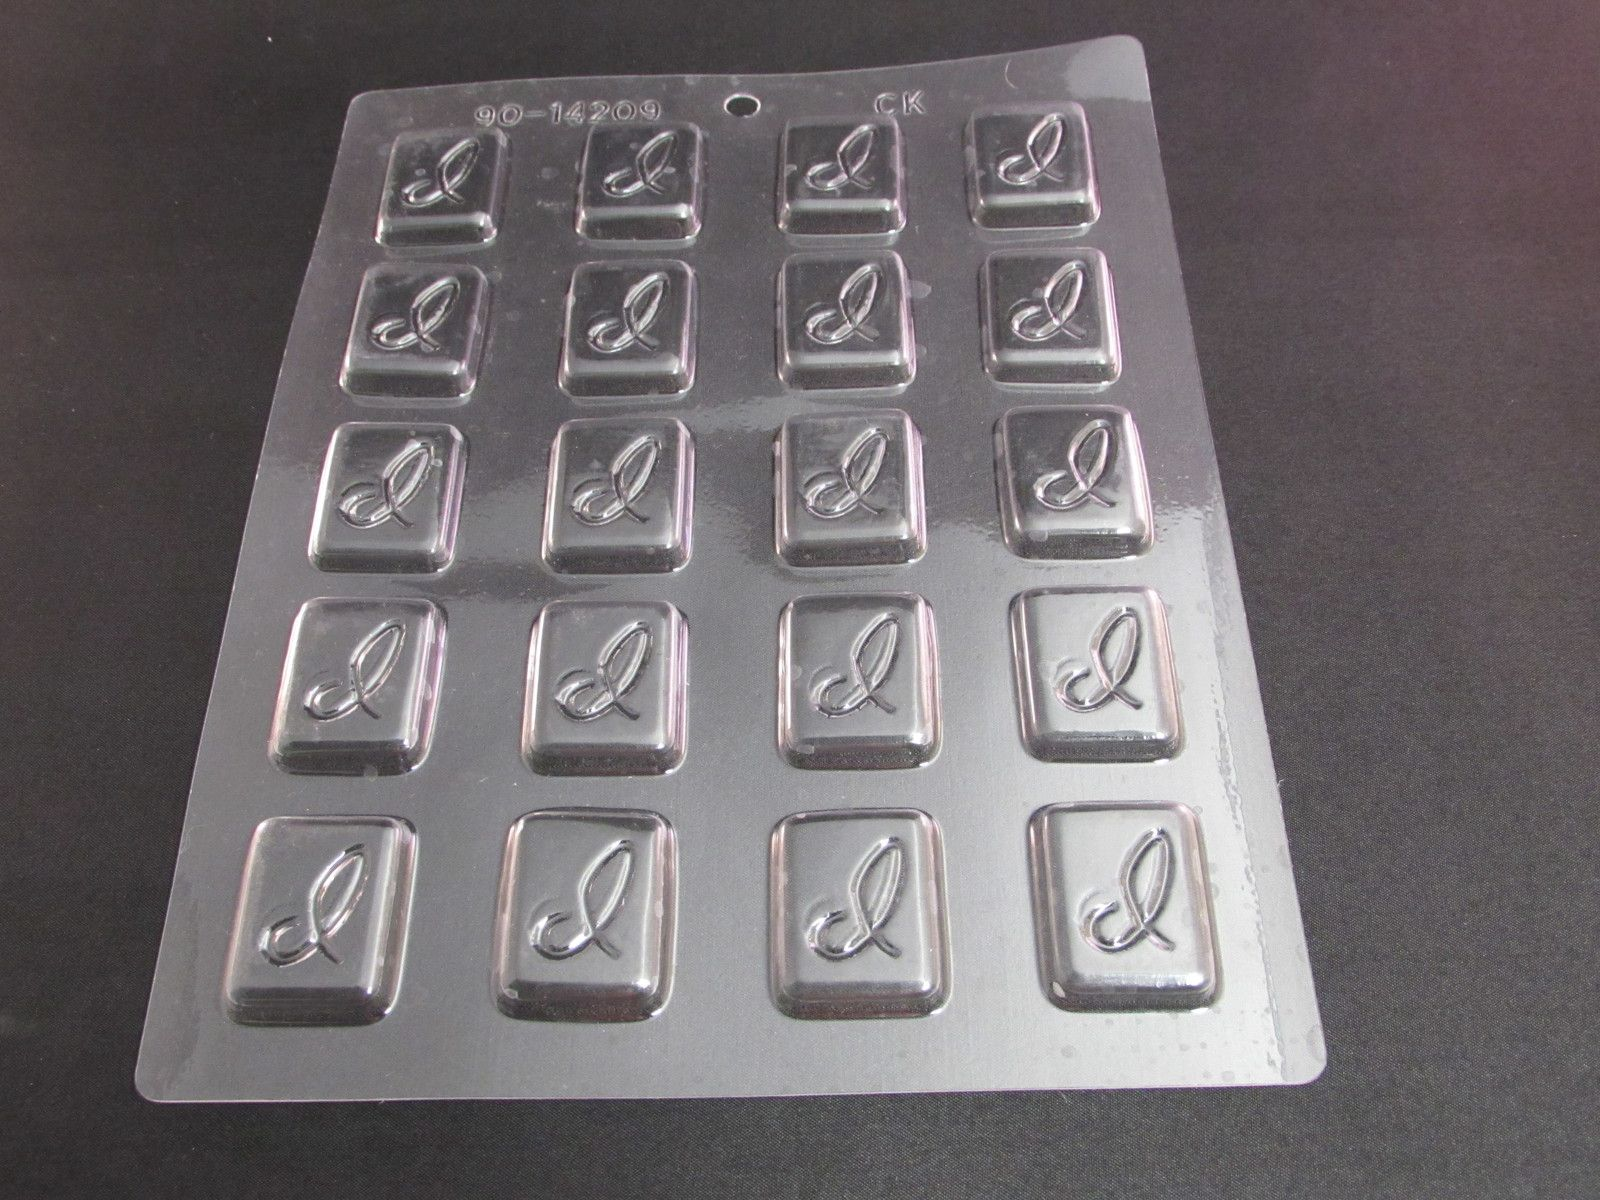 Initial I Candy Mold. This is a CK Products mold for making hard candies. The design is little rectangles with the Initial I on it. The model number is 90-14209. There are 20 spots on the mold. It has been used and does show signs of use along with being a little warped.